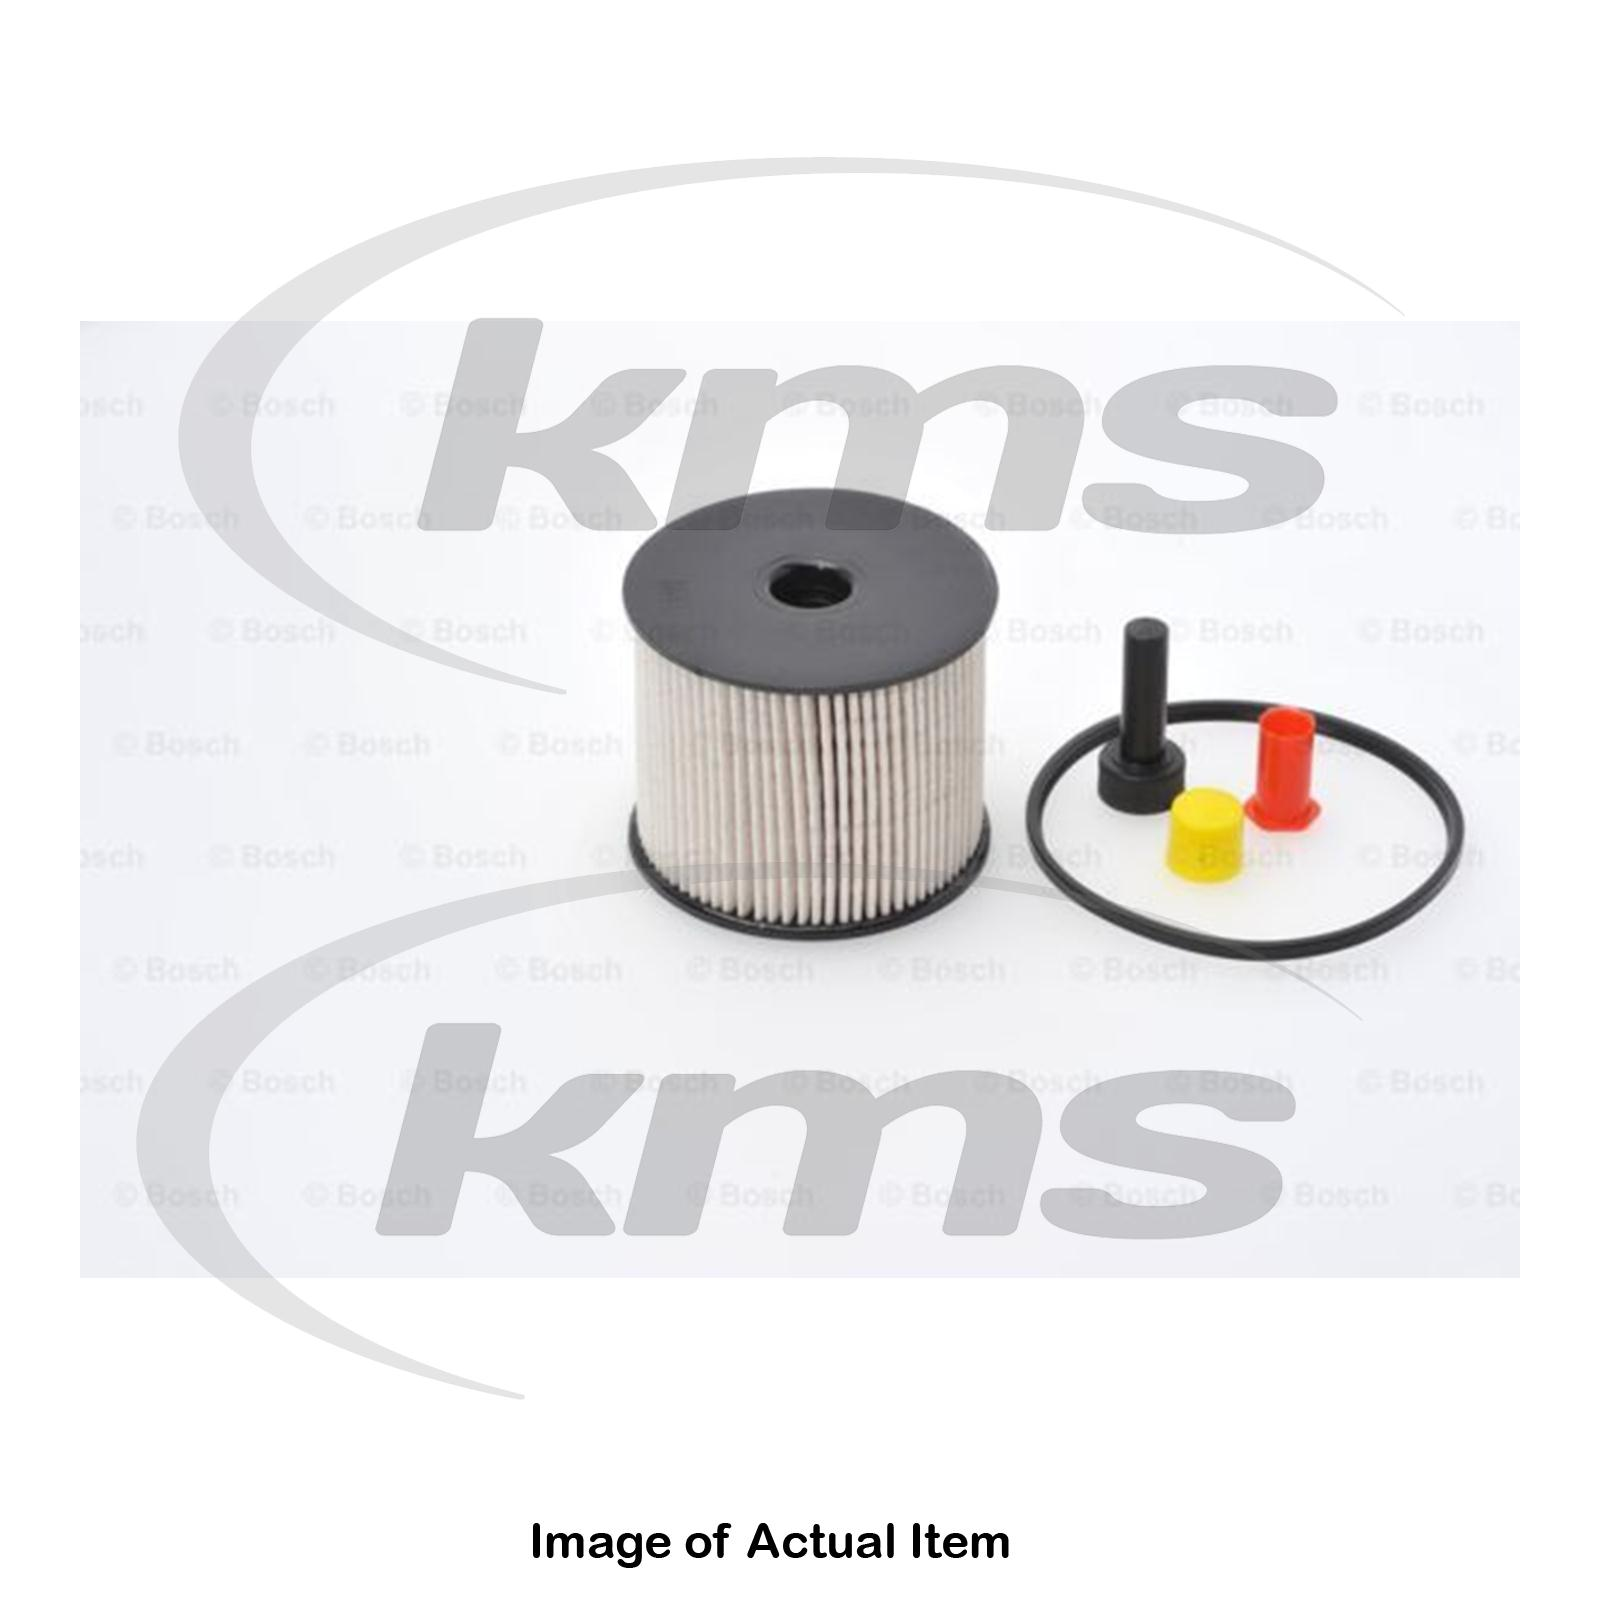 1 457 070 000 CARBURANT filtre neuf Bosch